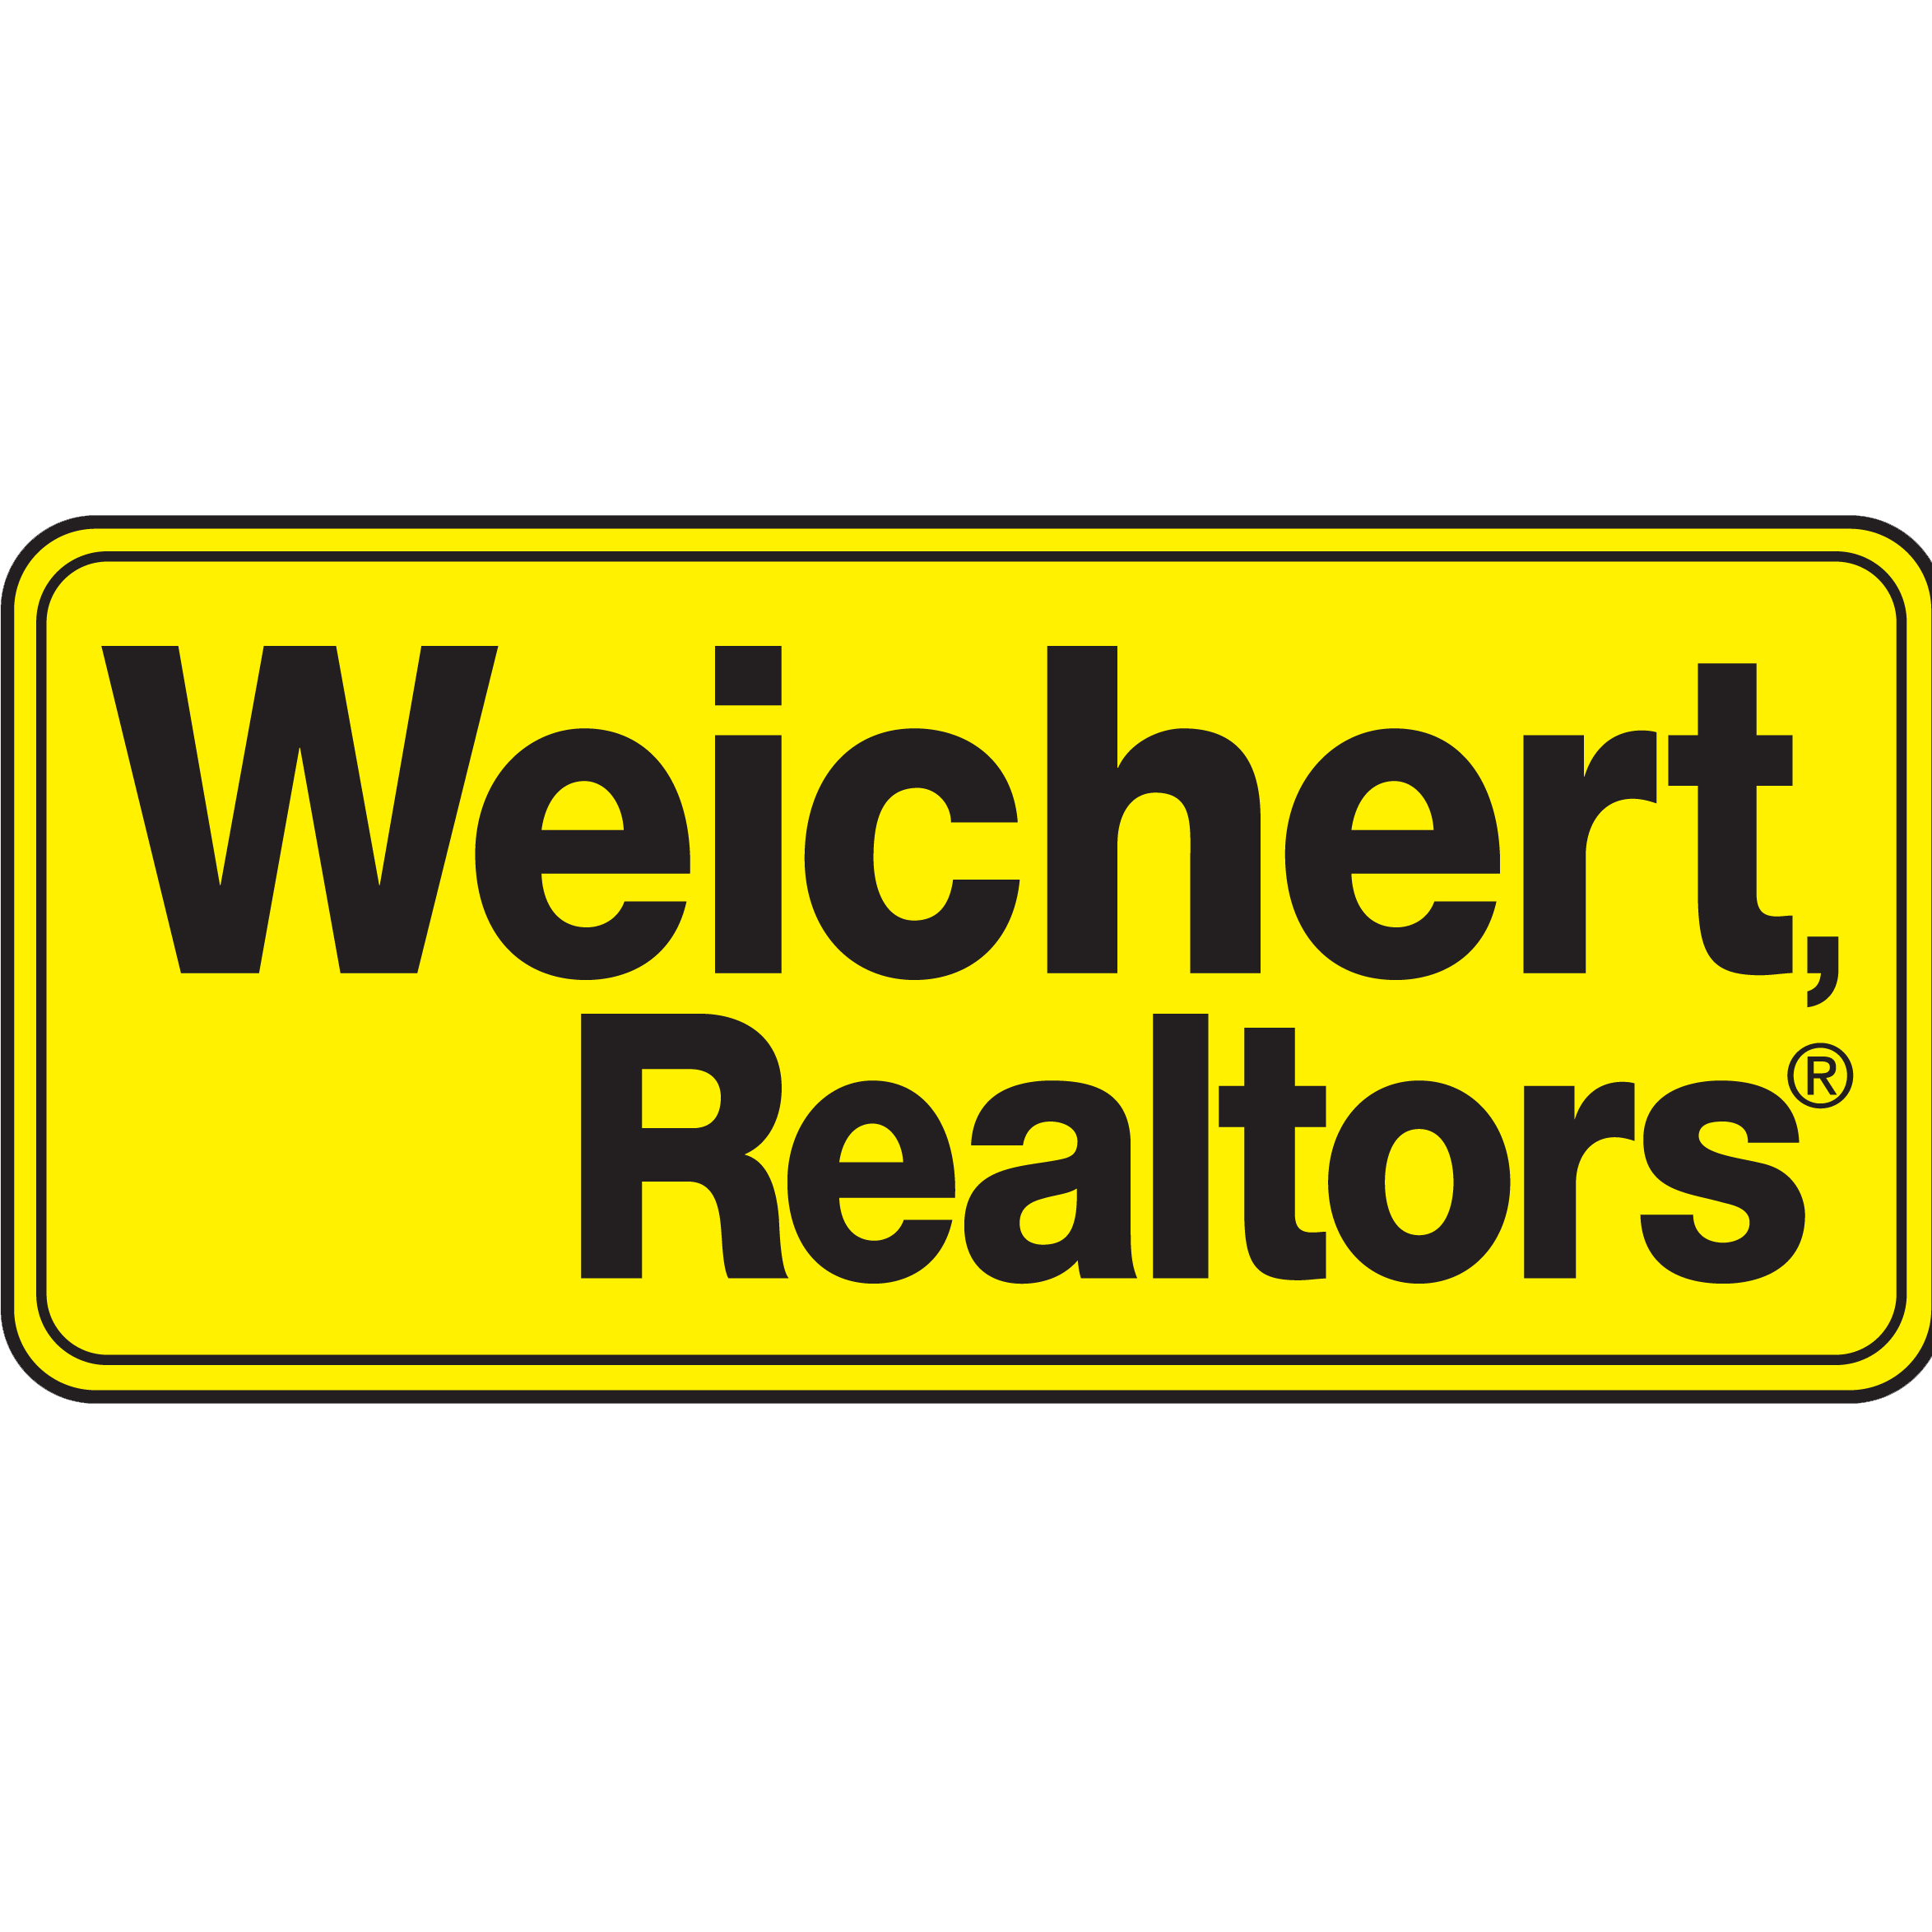 Terrence Kenny Weichert Realtors Coupons near me in